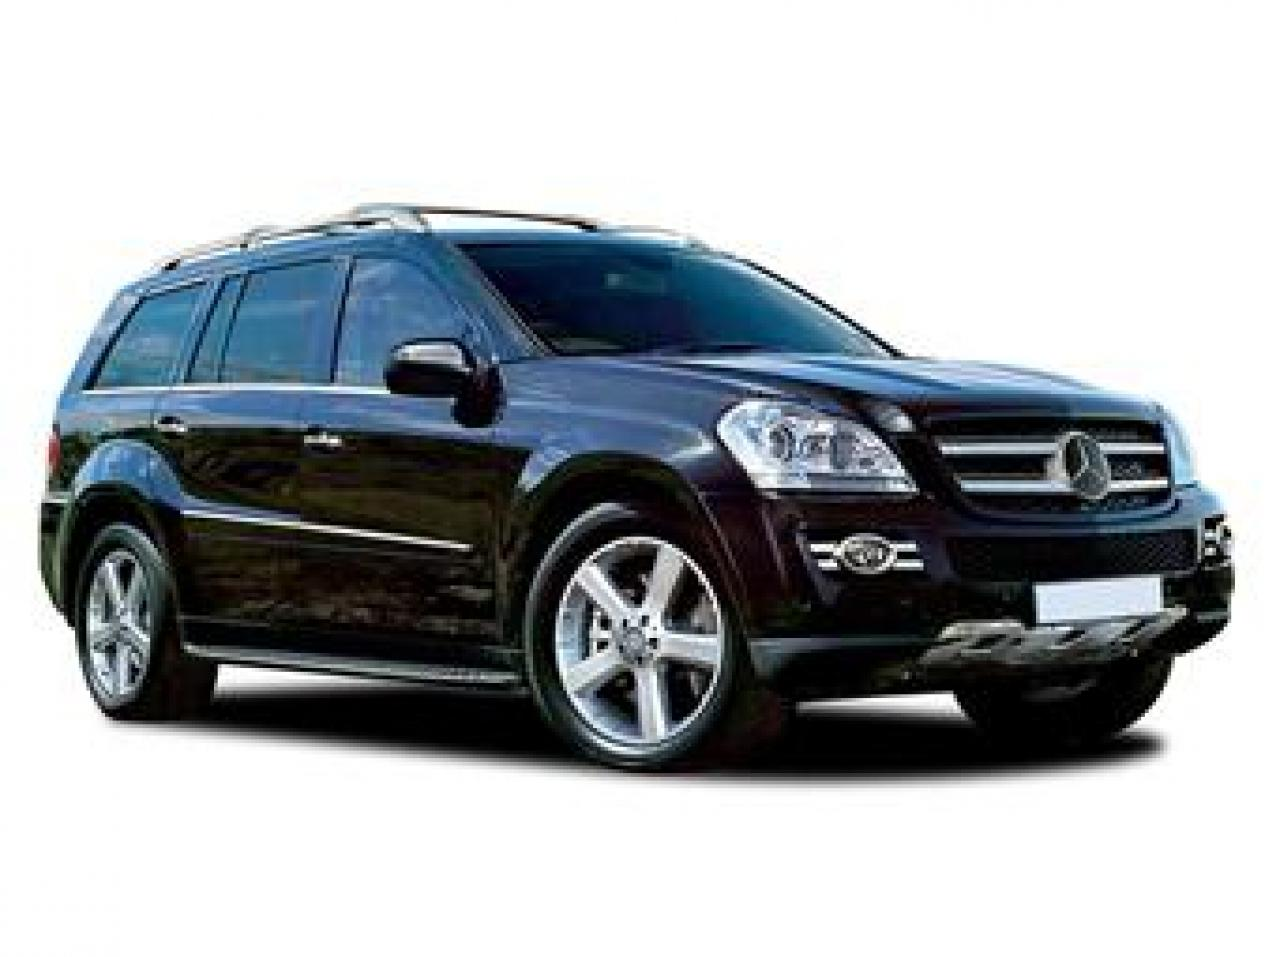 Mercedes benz ml 450 cdi photos and comments www for Mercedes benz 450